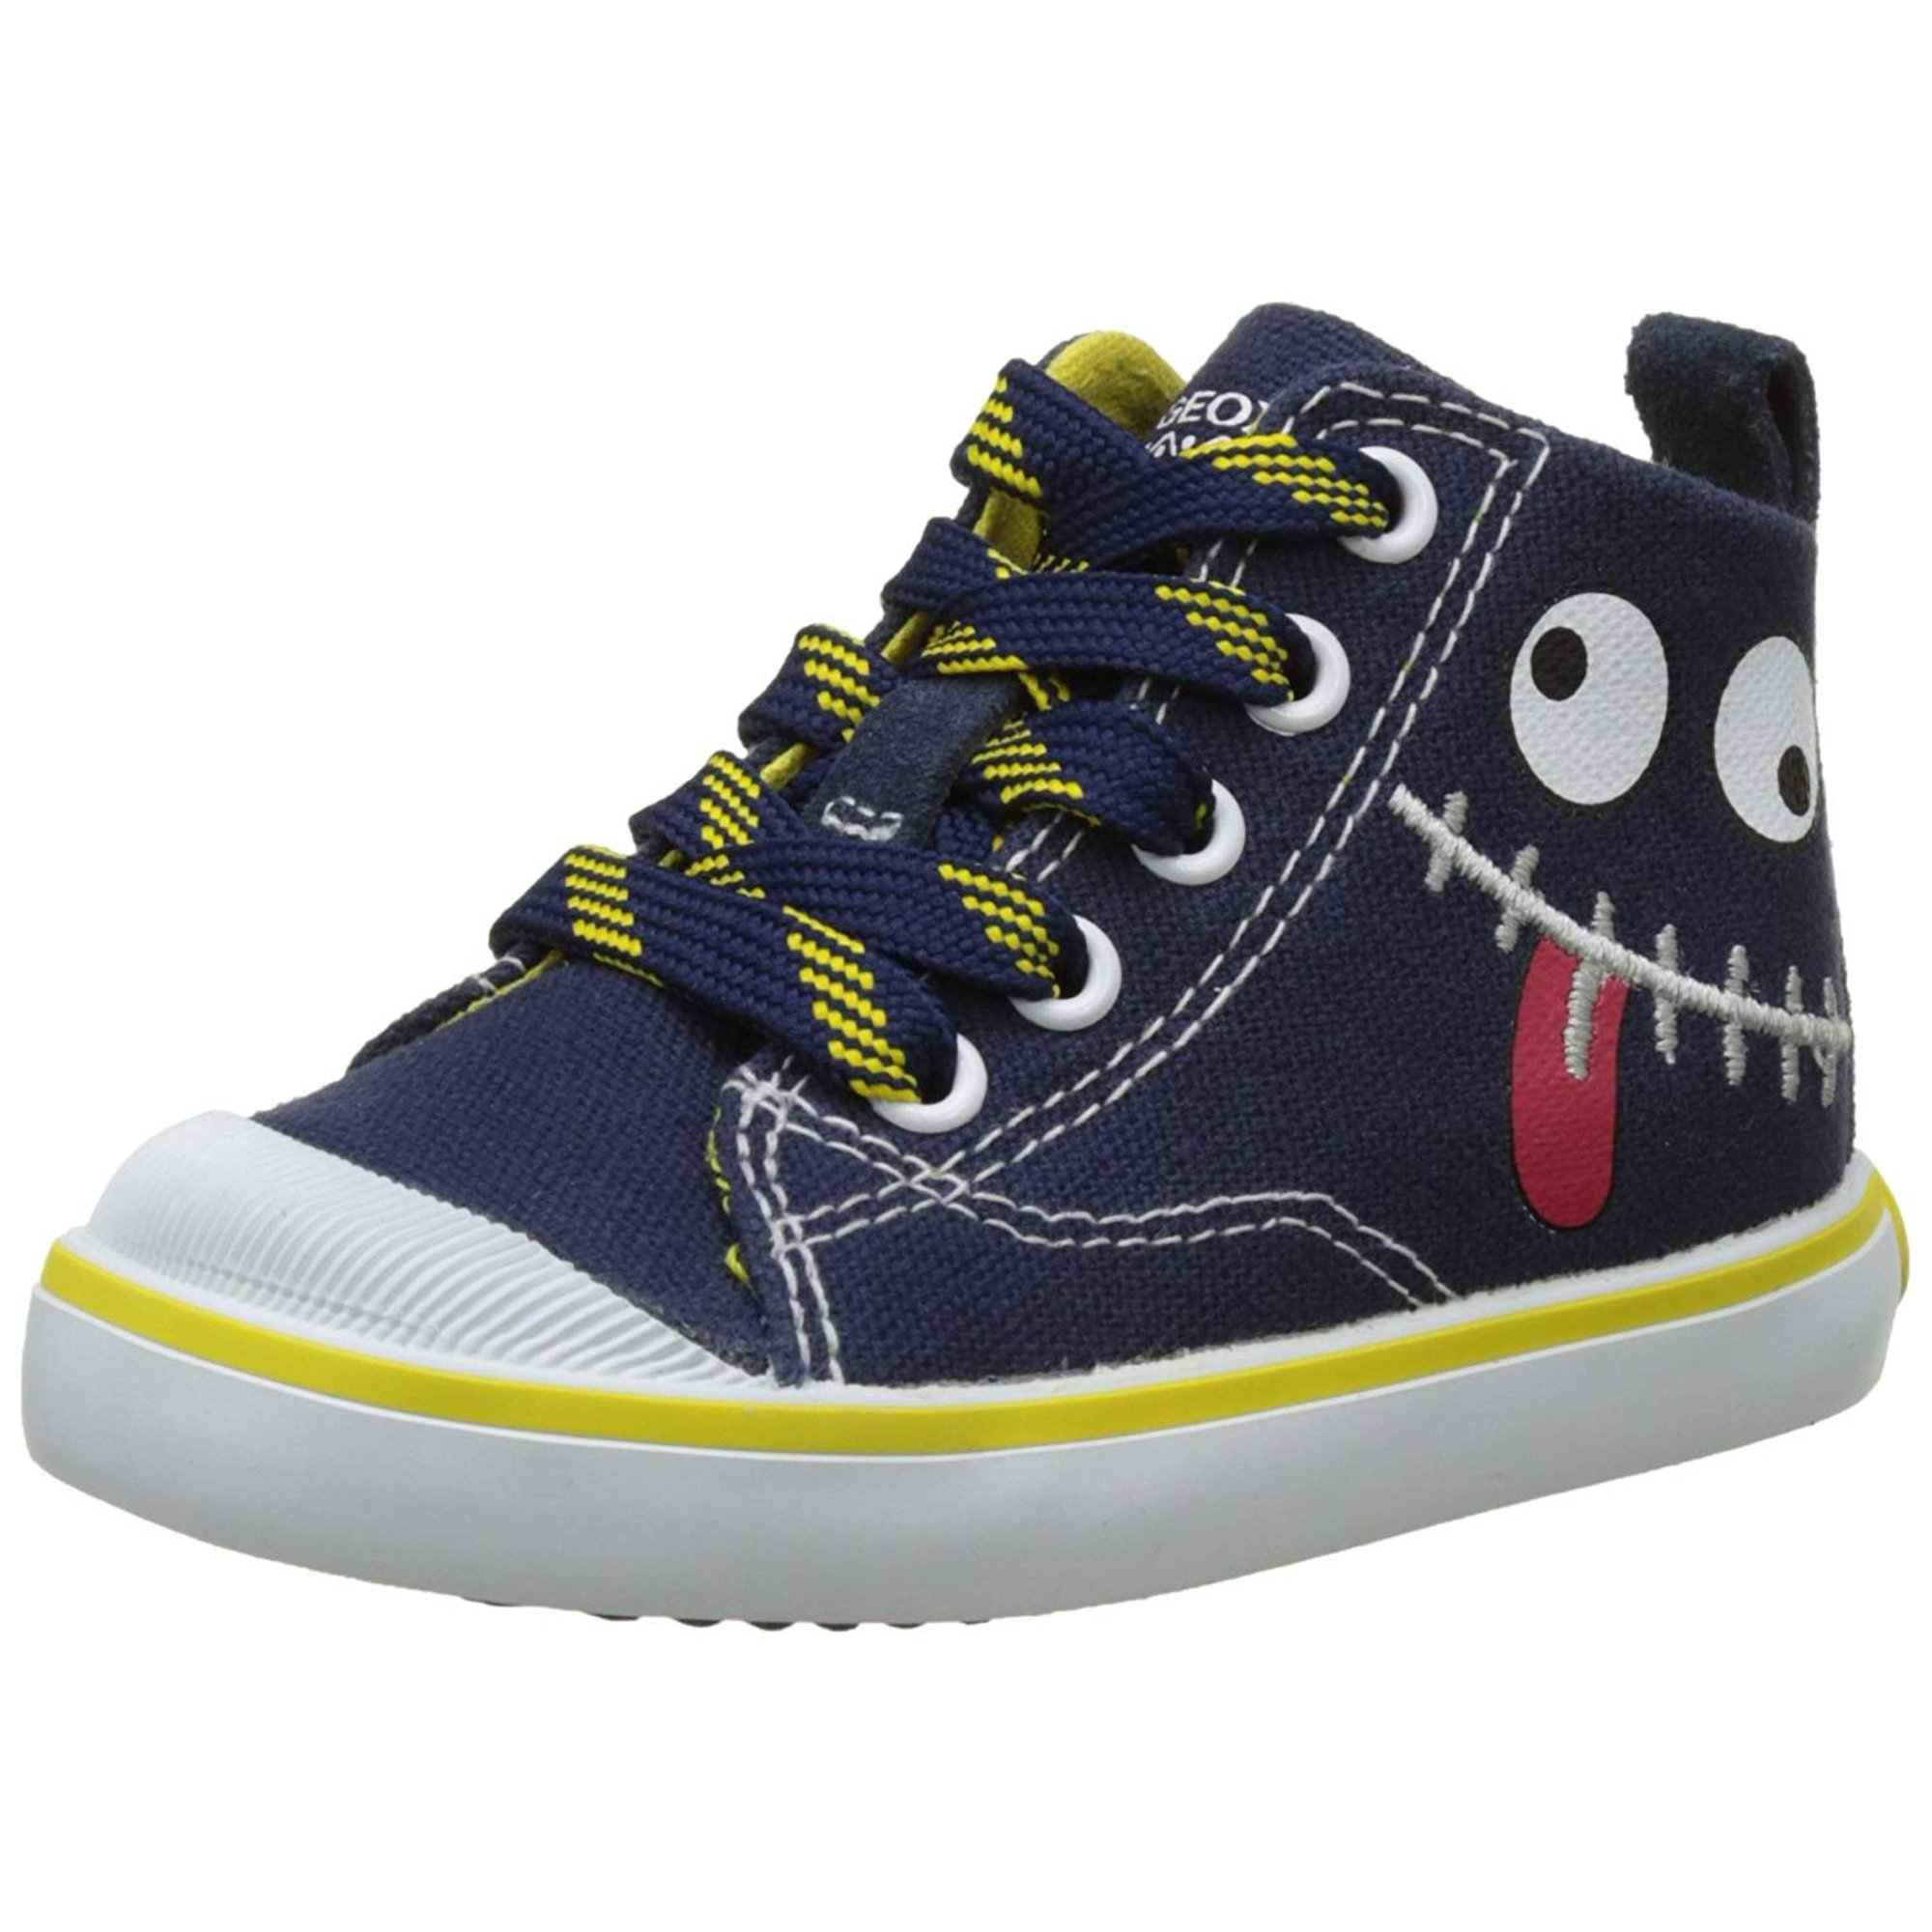 nice shoes pick up best prices Kids Geox Boys Baby Kiwiboy 81 Sneaker Low | Walmart Canada